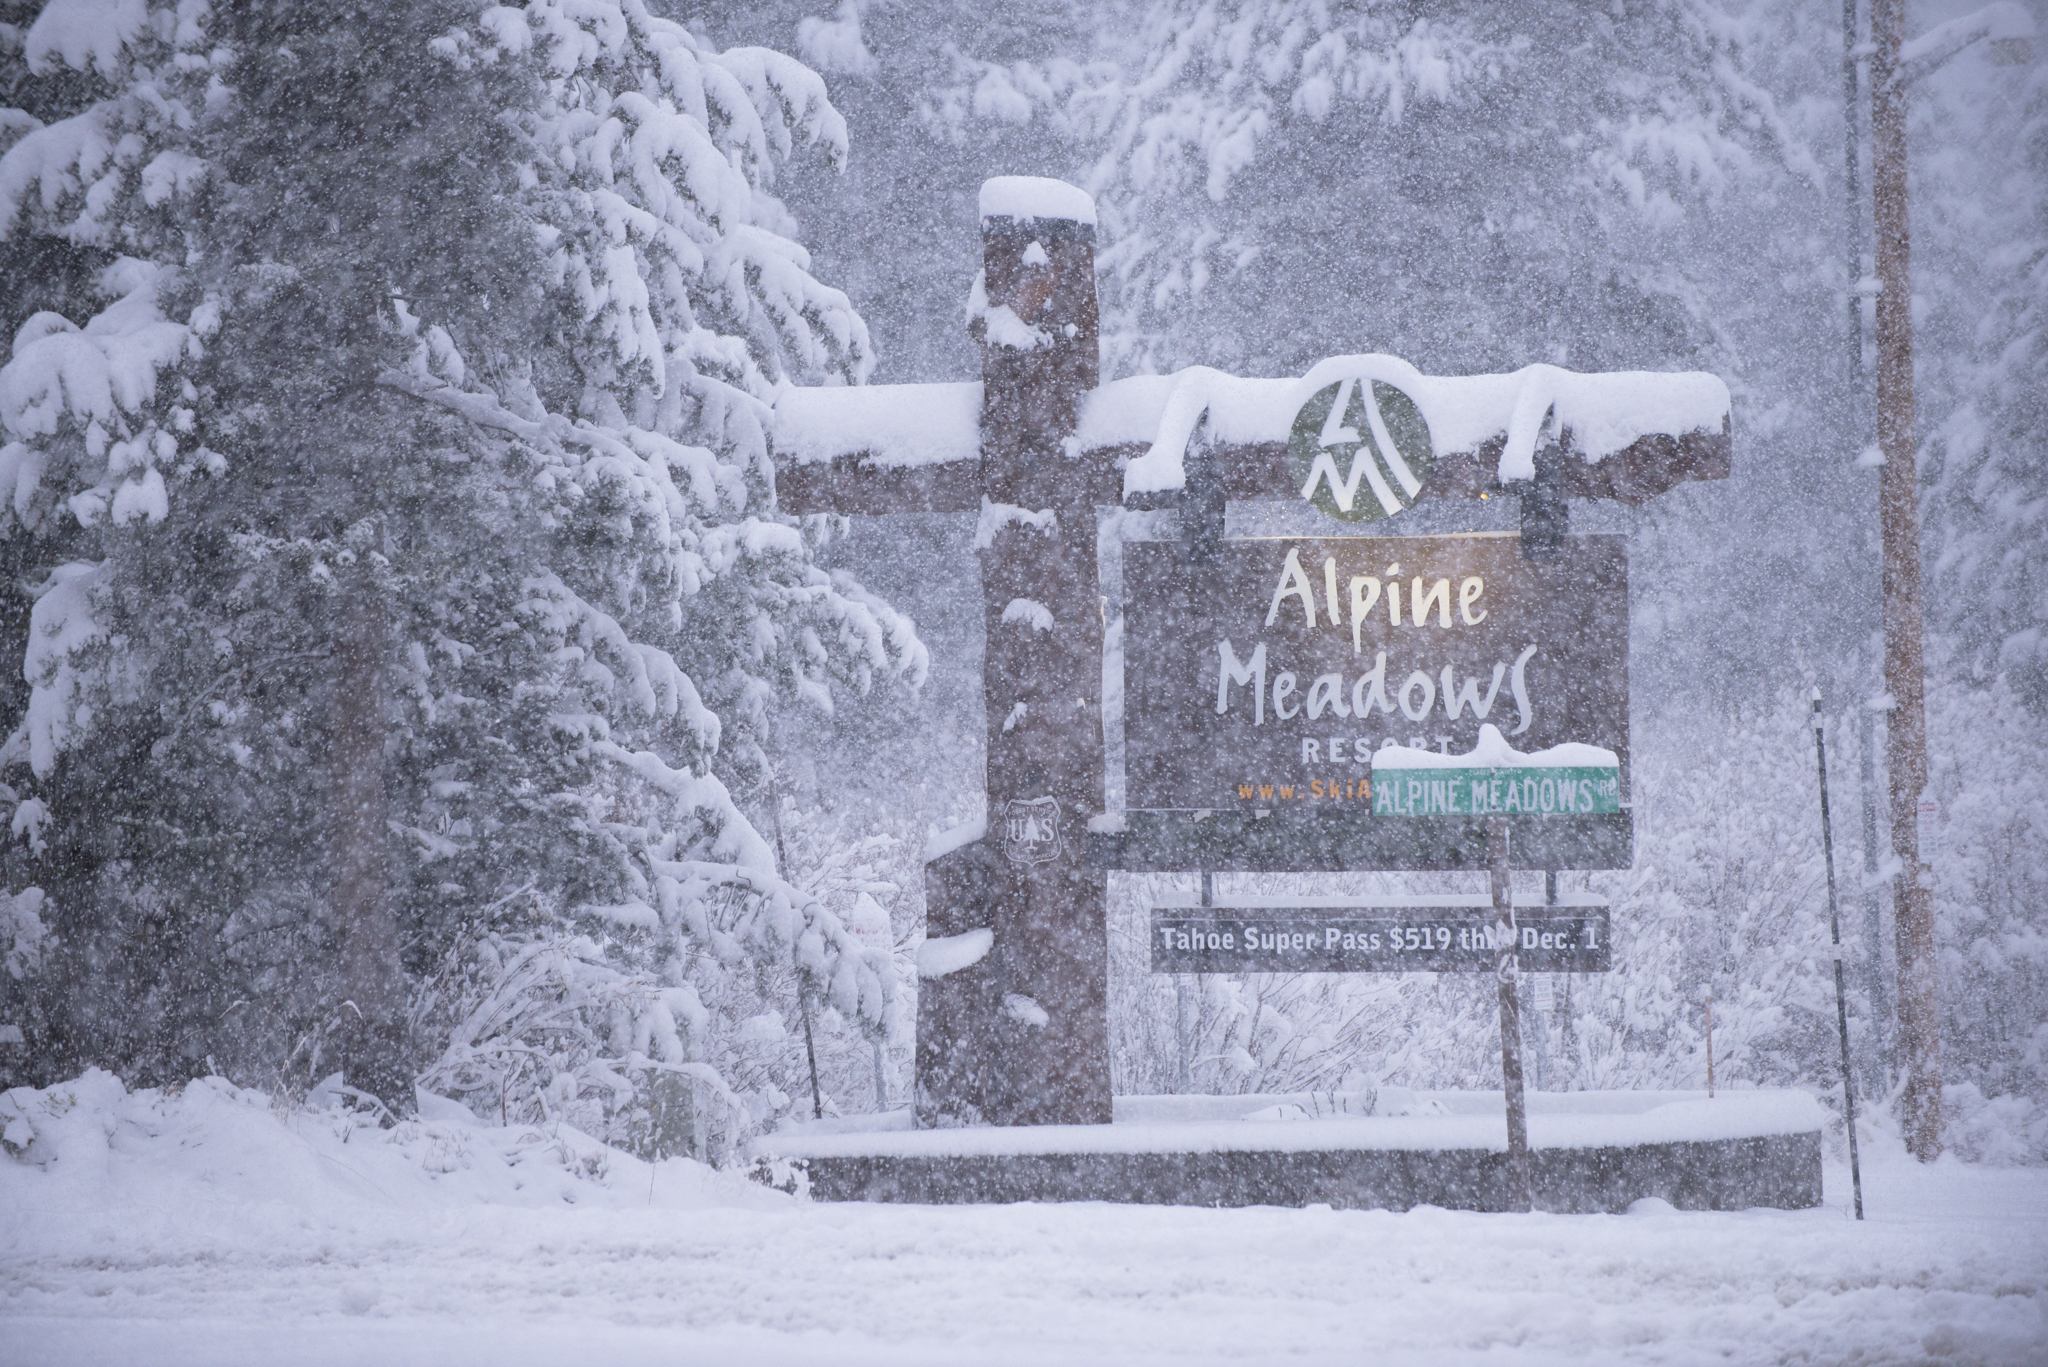 Hopefully the Alpine Meadow sign looks like this real soon.